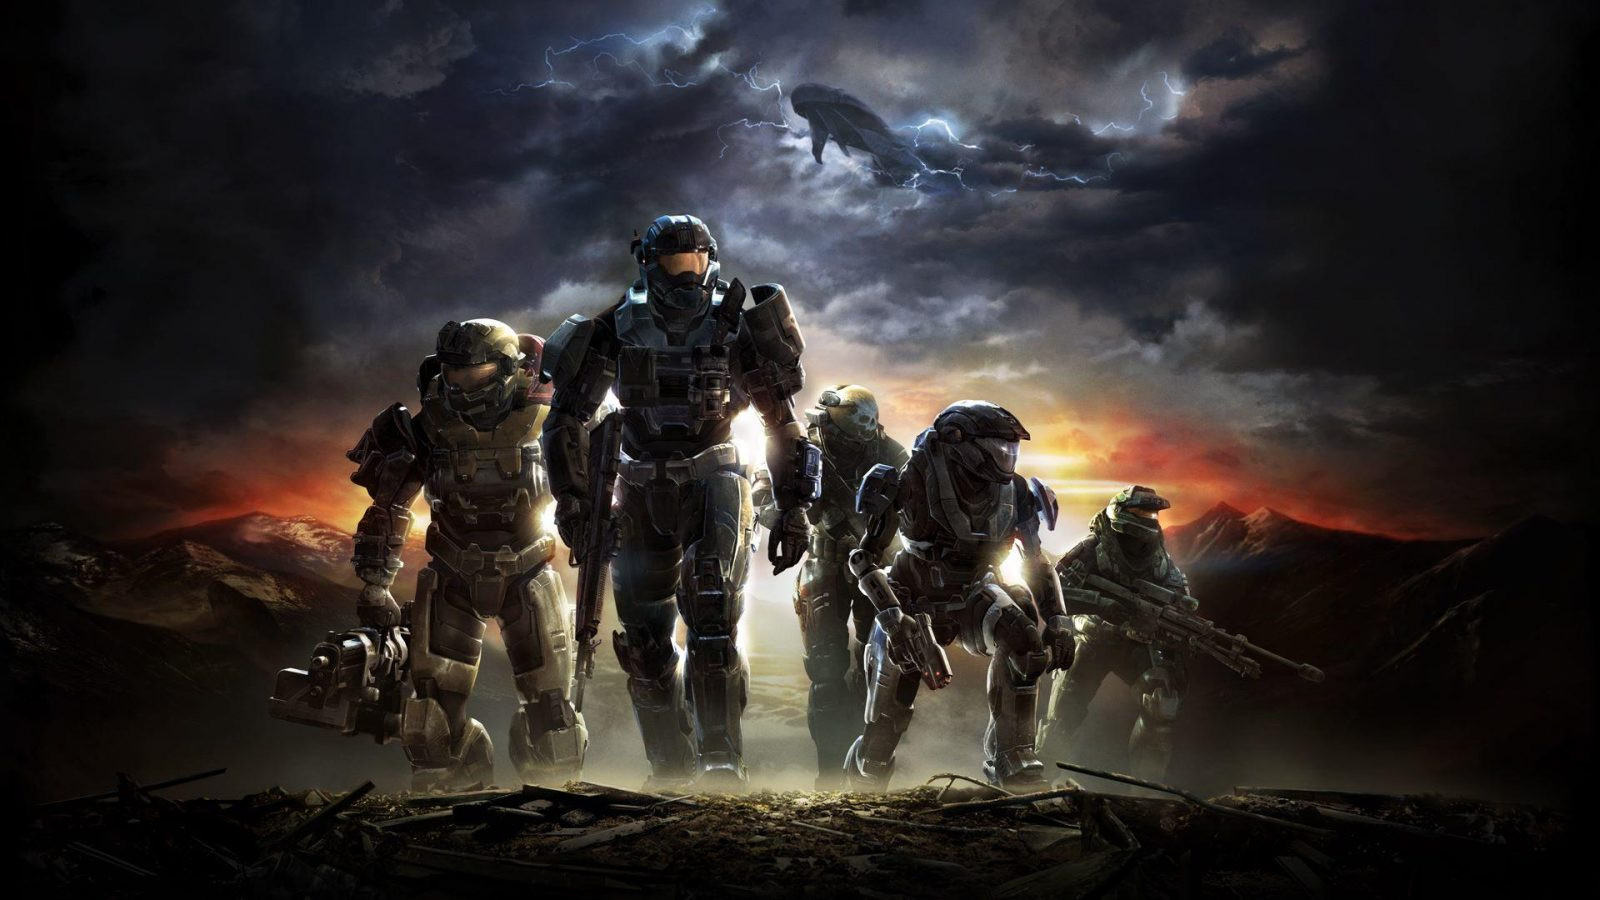 Halo: Reach's PC Version Sports an Enhanced Mode That Goes Beyond Performance